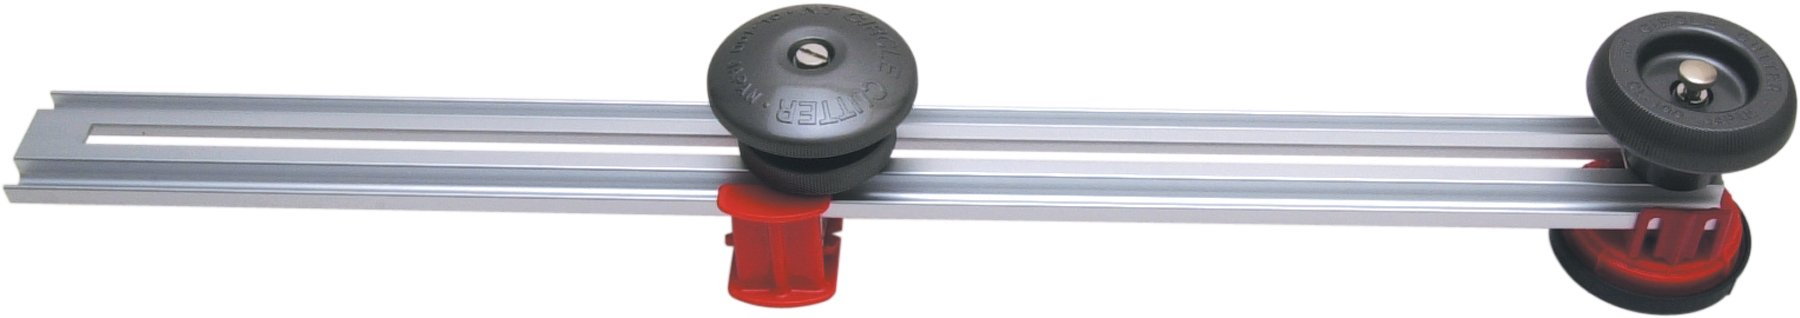 NT Cutter Large Fabric Circle Cutter, 7-7/8 Inches ~ 39-3/8 Inches Diameter, 1 Cutter (CL-10000P)